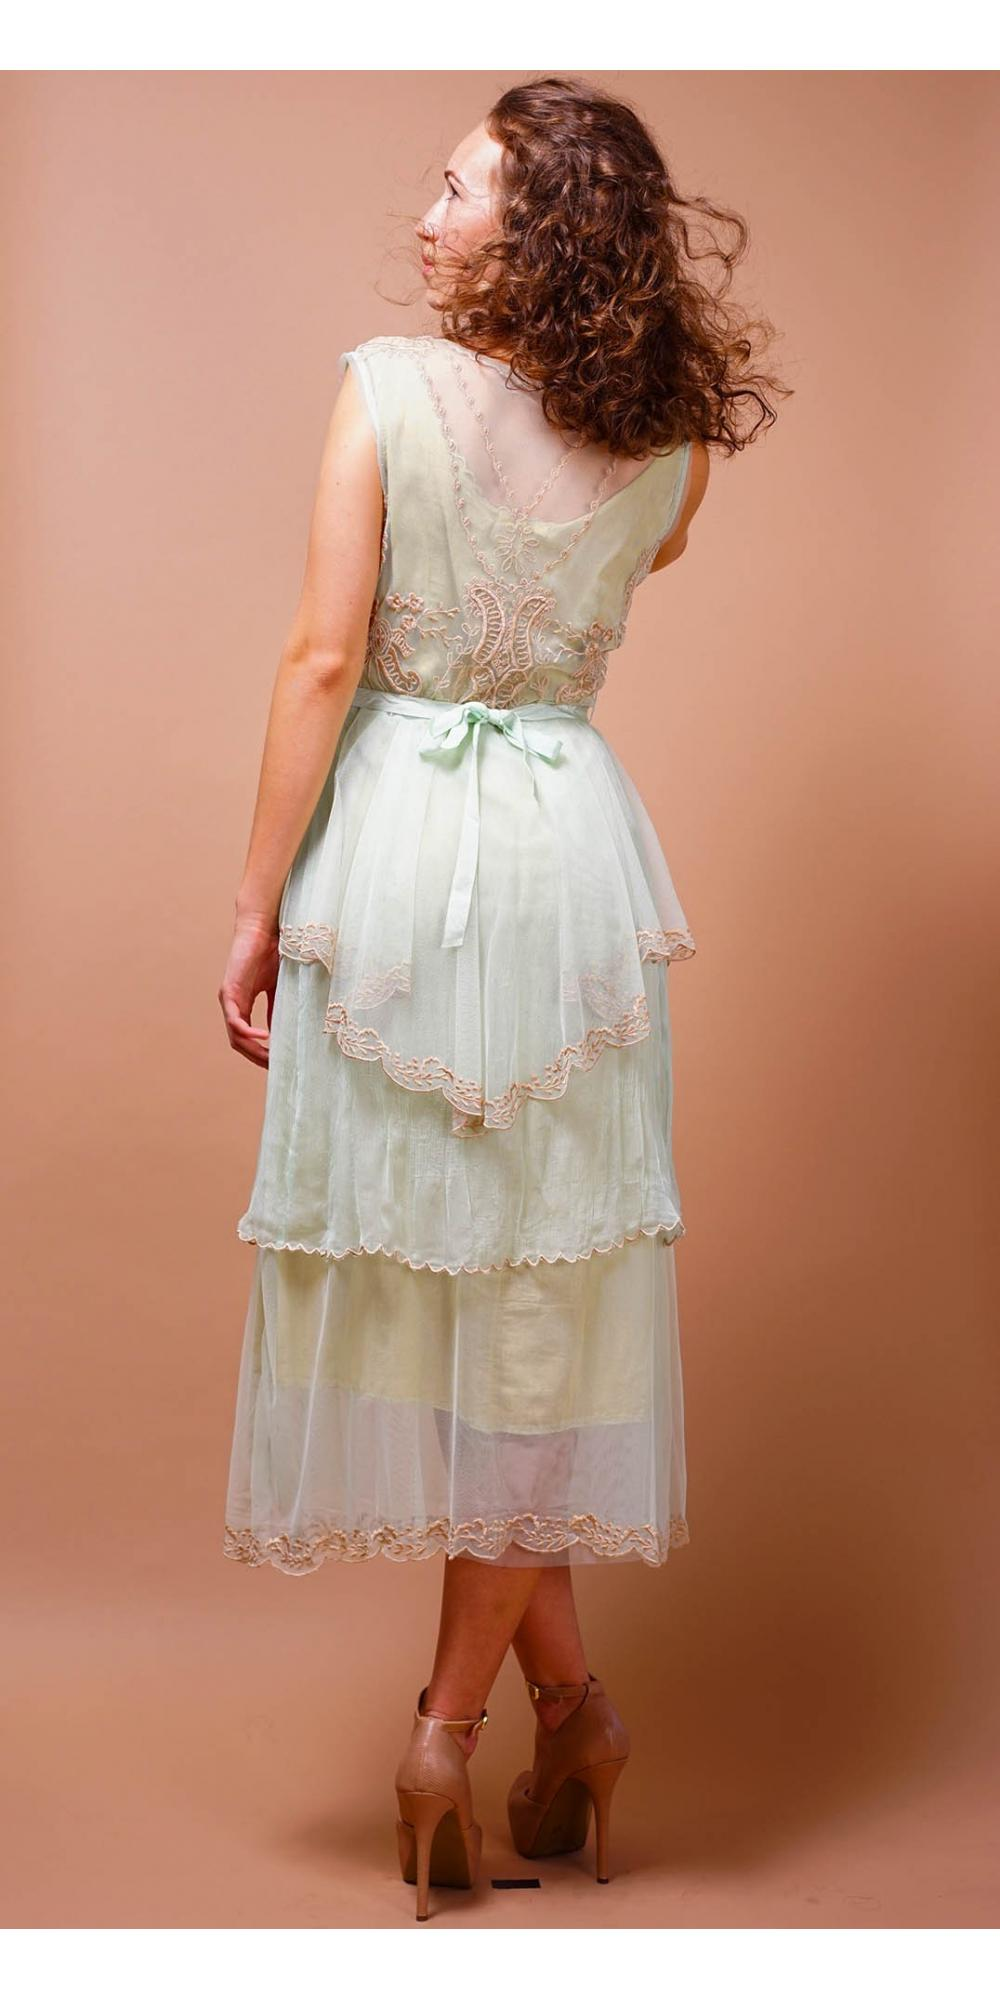 Tiered Vintage Style Tea Party Dress In Mint By Nataya